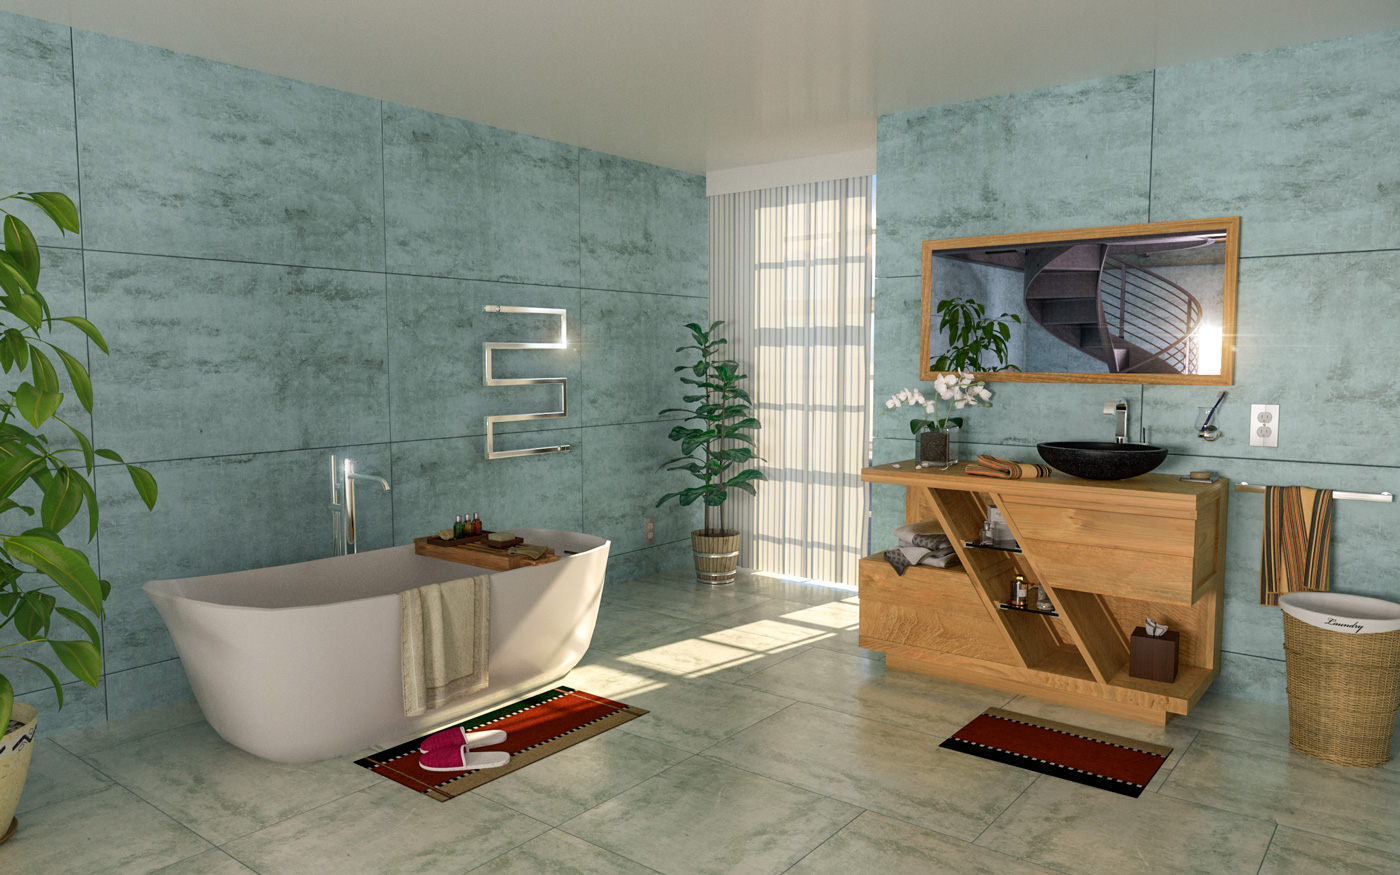 Salle de bains - Architecture visualization with Arnold Render and Cinema 4d